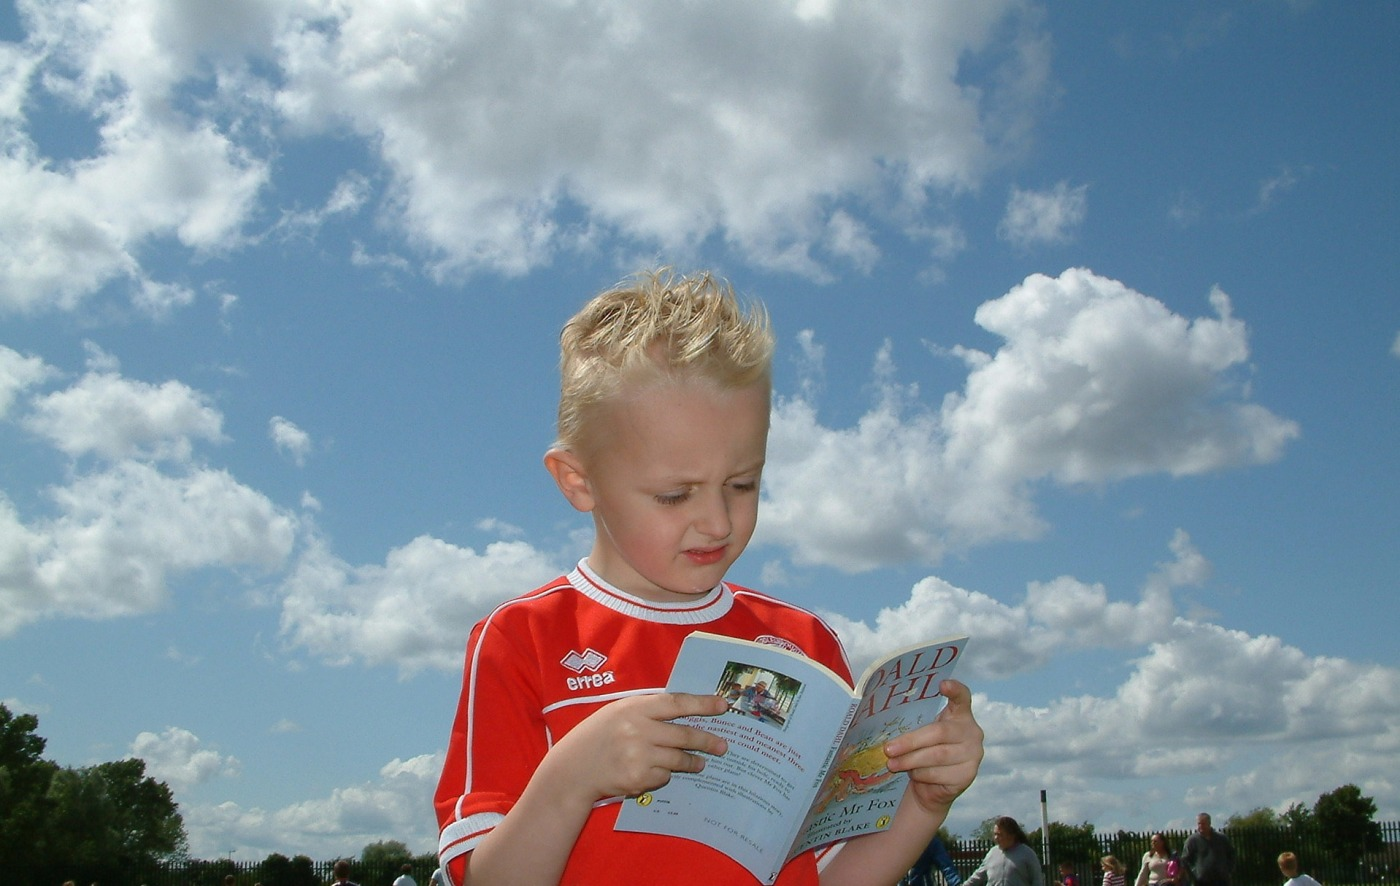 boy makes face while reading